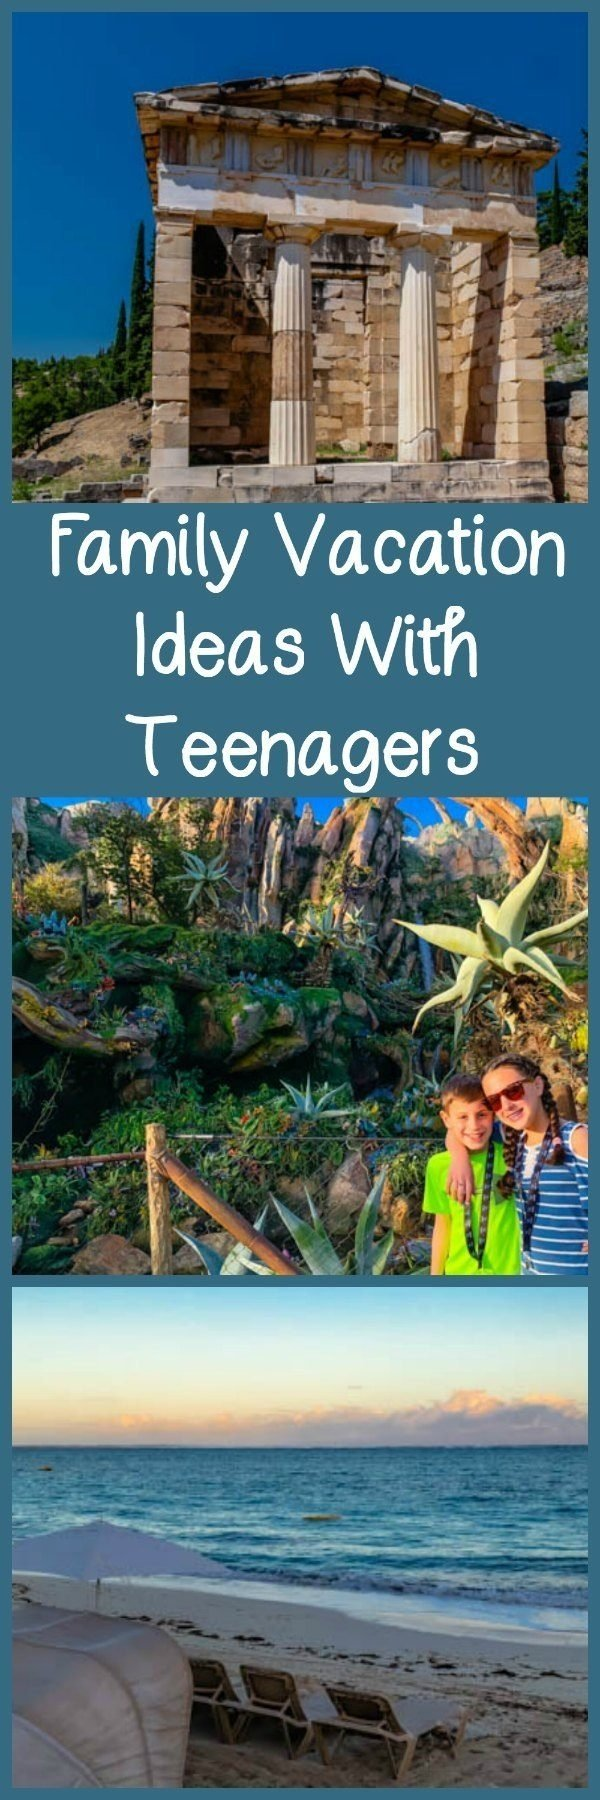 10 Pretty Family Vacation Ideas With Teenagers family vacation ideas with teenagers family travel magazine 2020